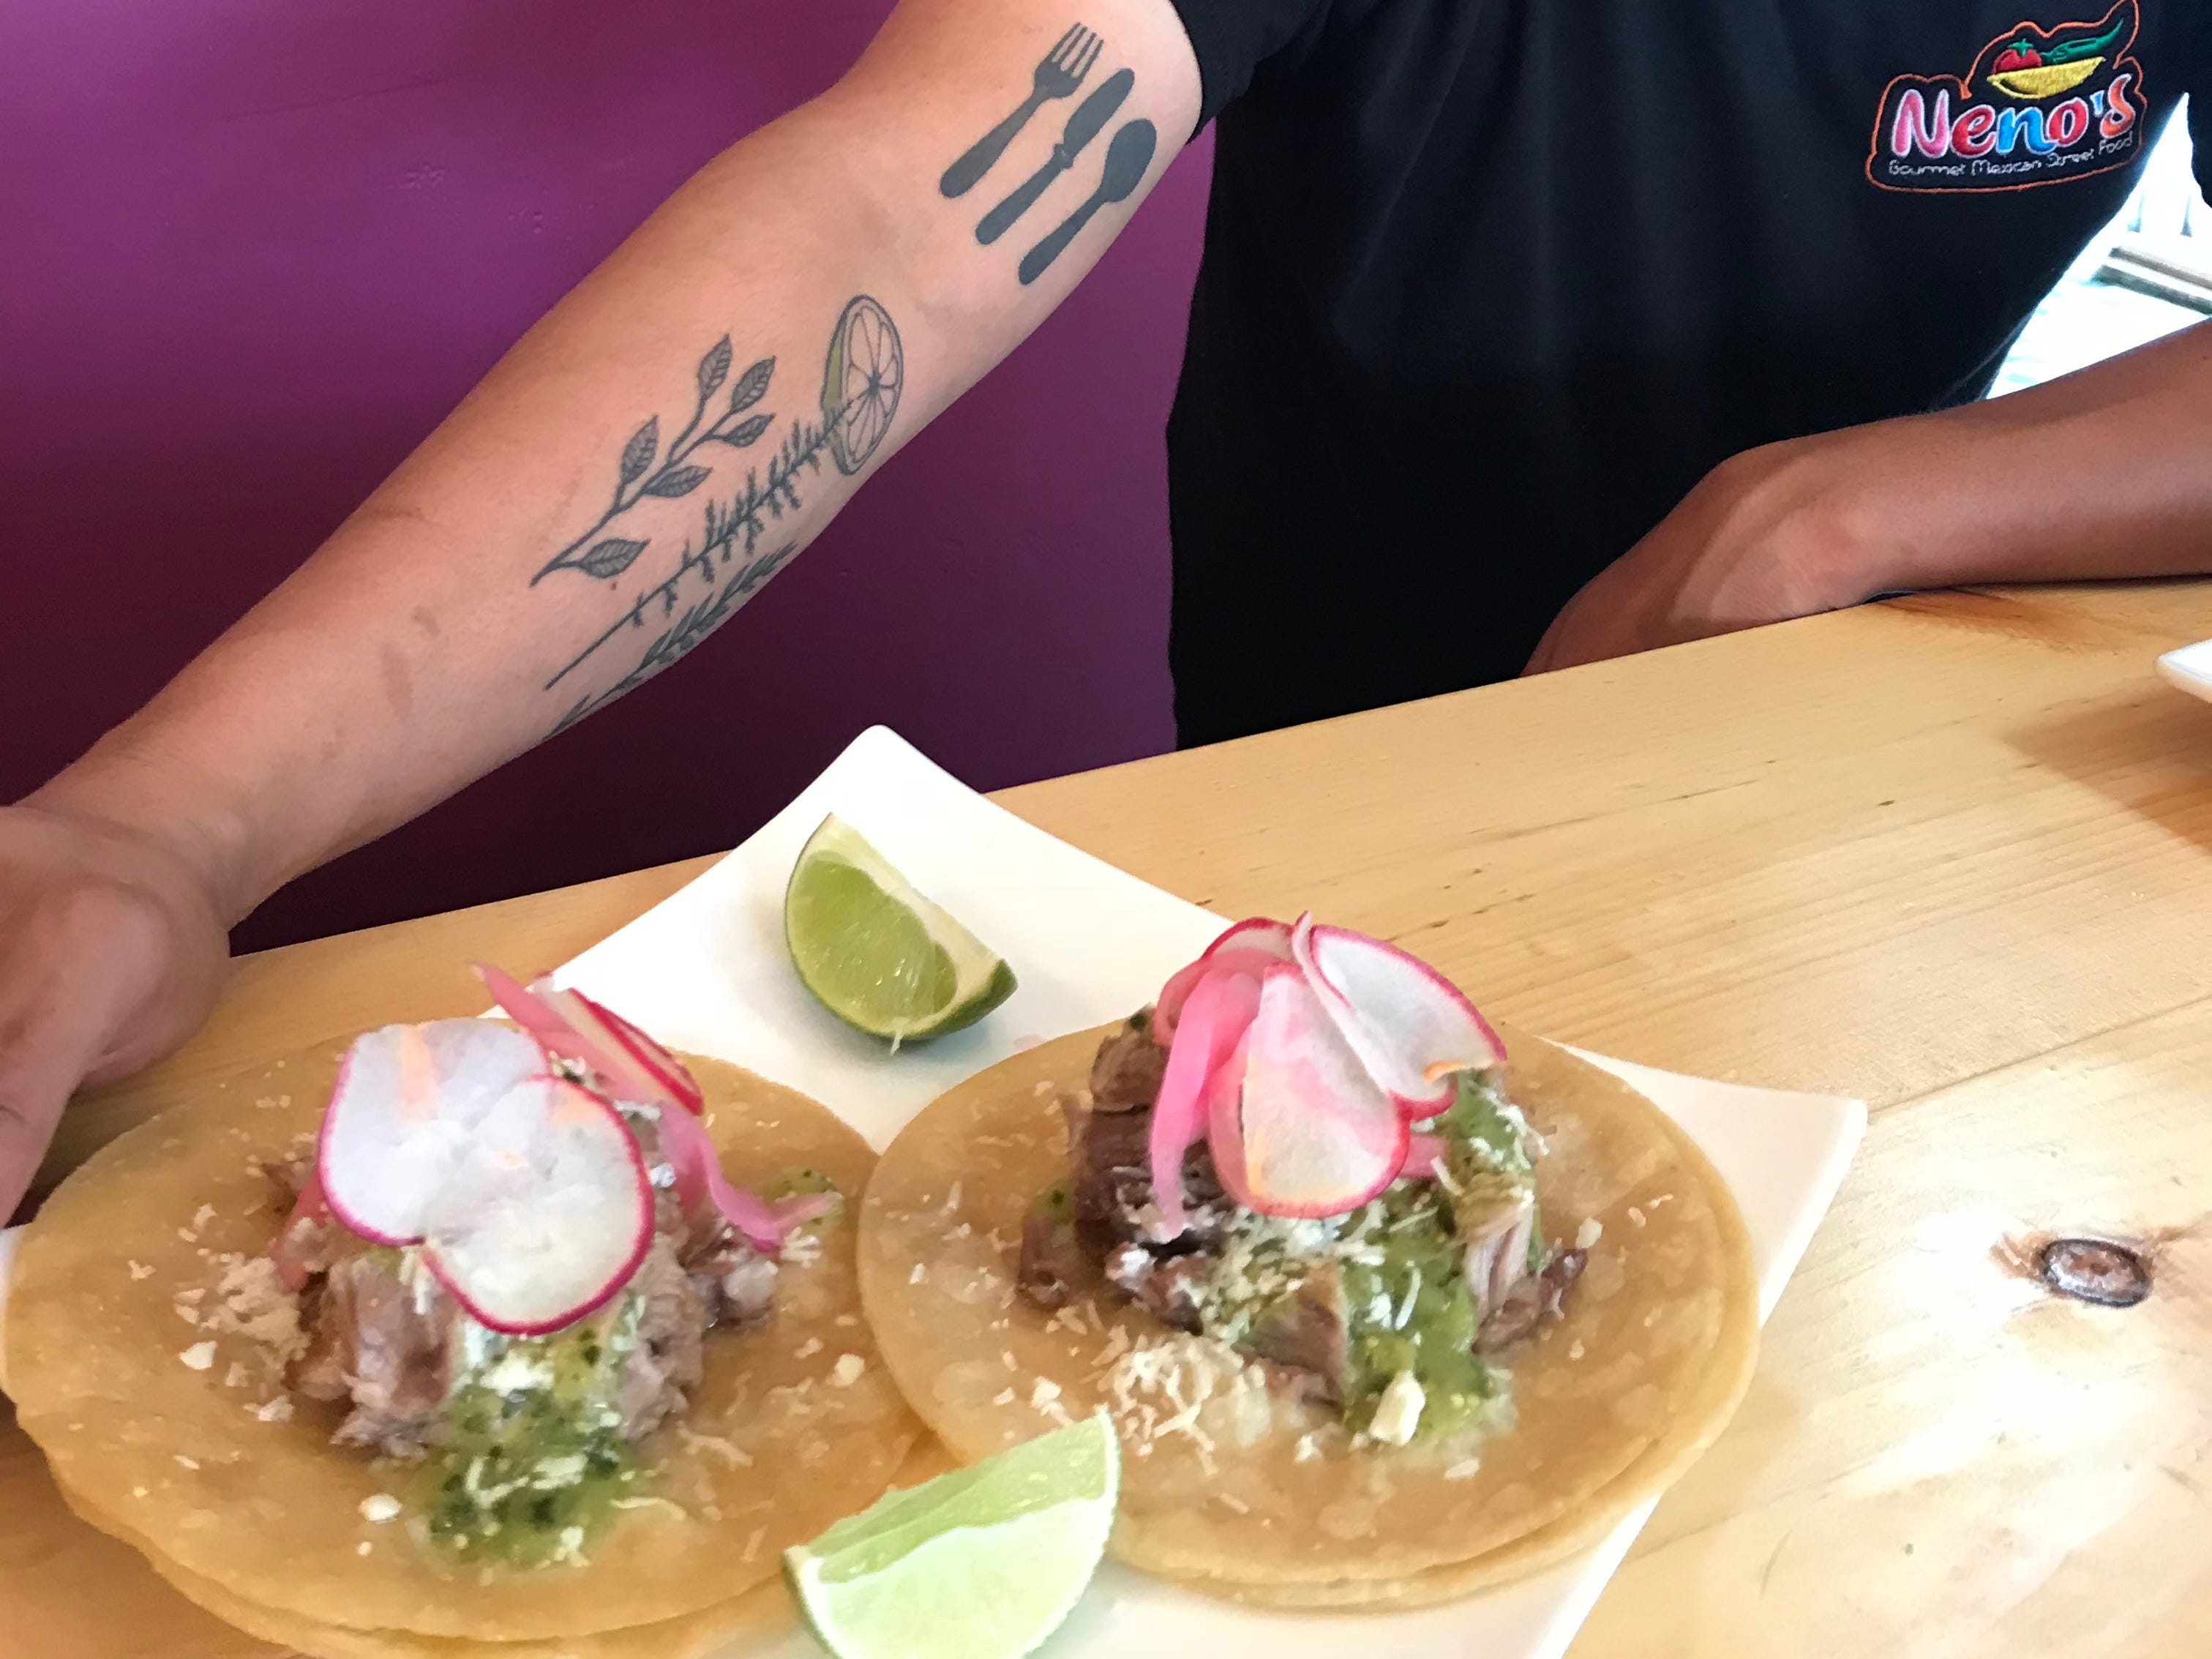 Fidelio Rita shows off his tatoos and his carnitas tacos.